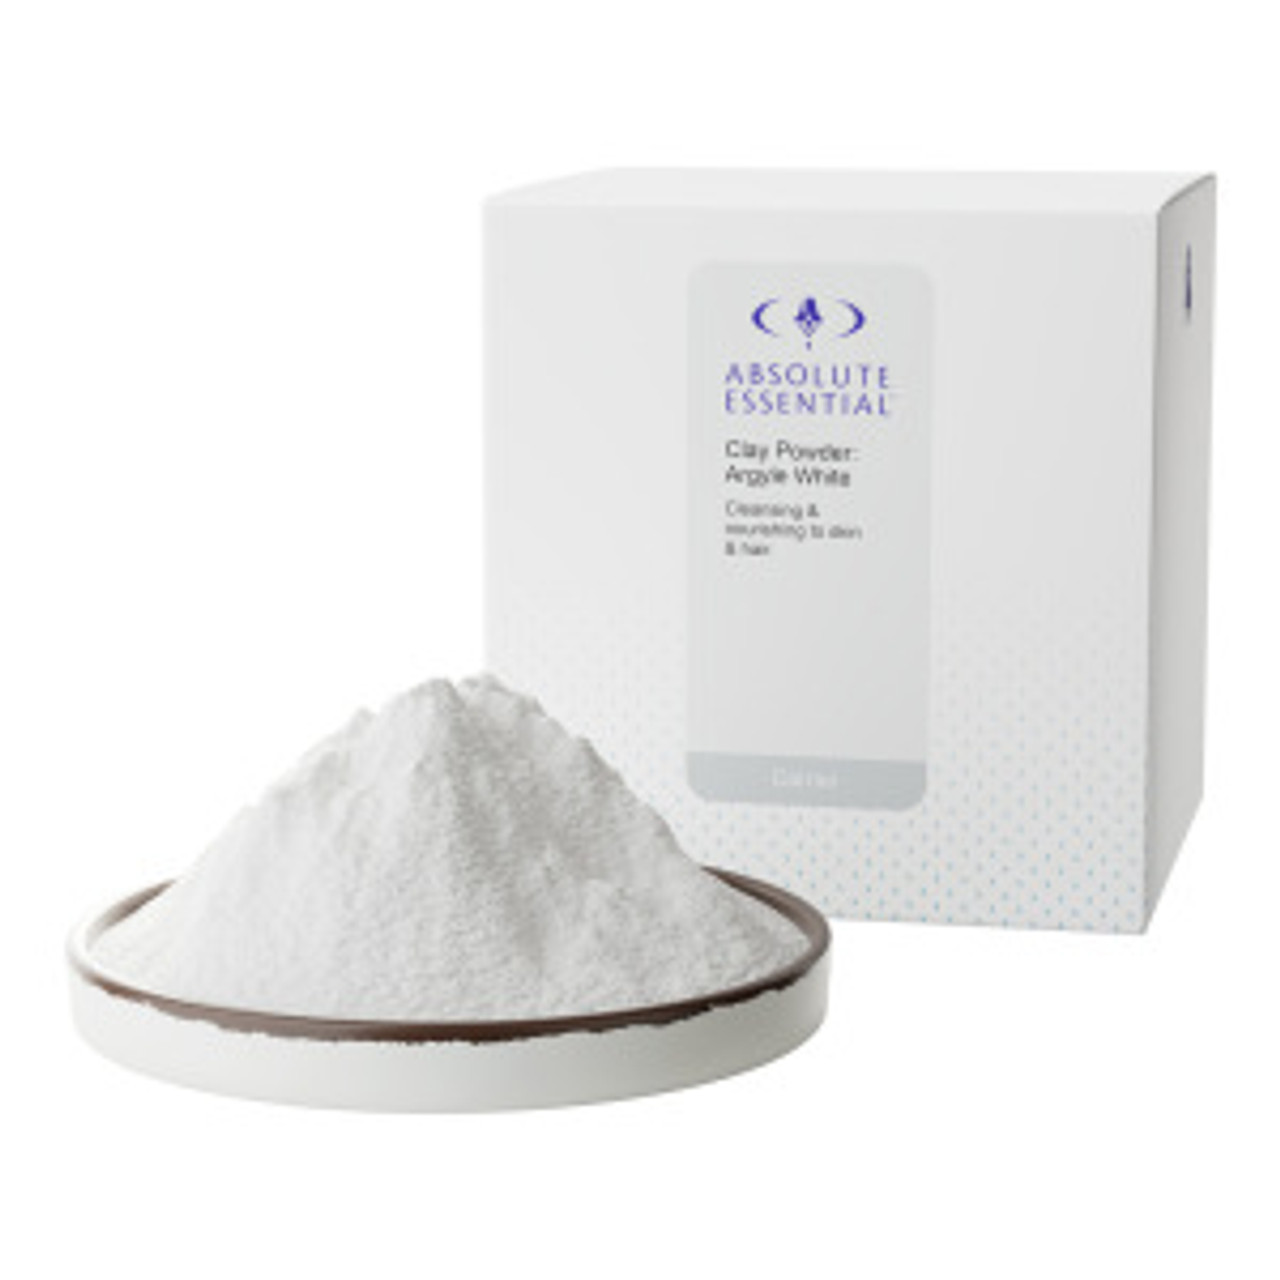 Clay Powder. Skin Detox, Argyle White 50gm